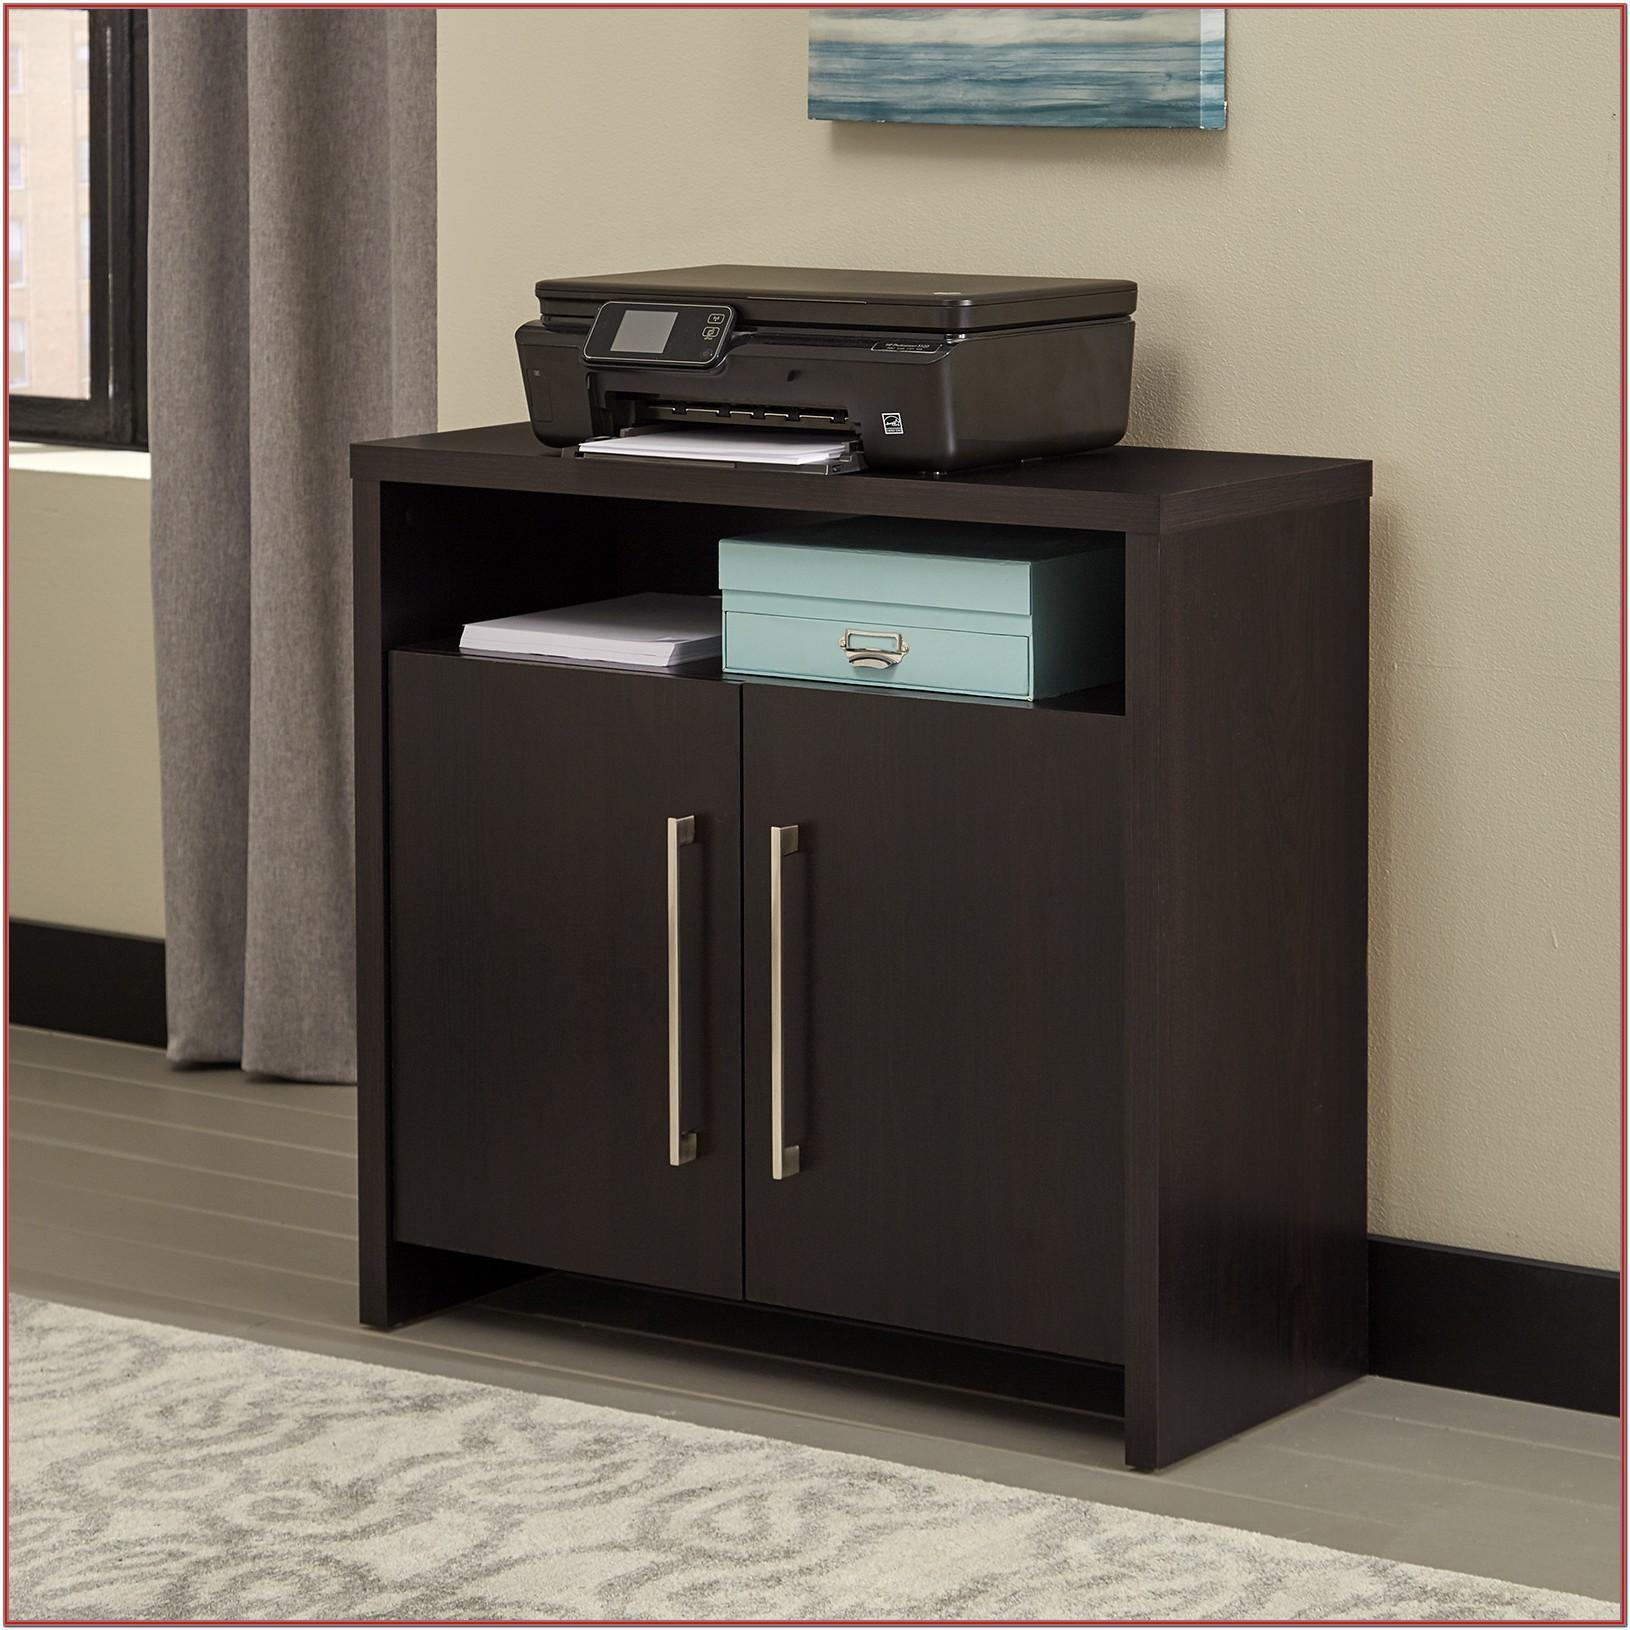 Storage Cabinets For Living Room Amazon